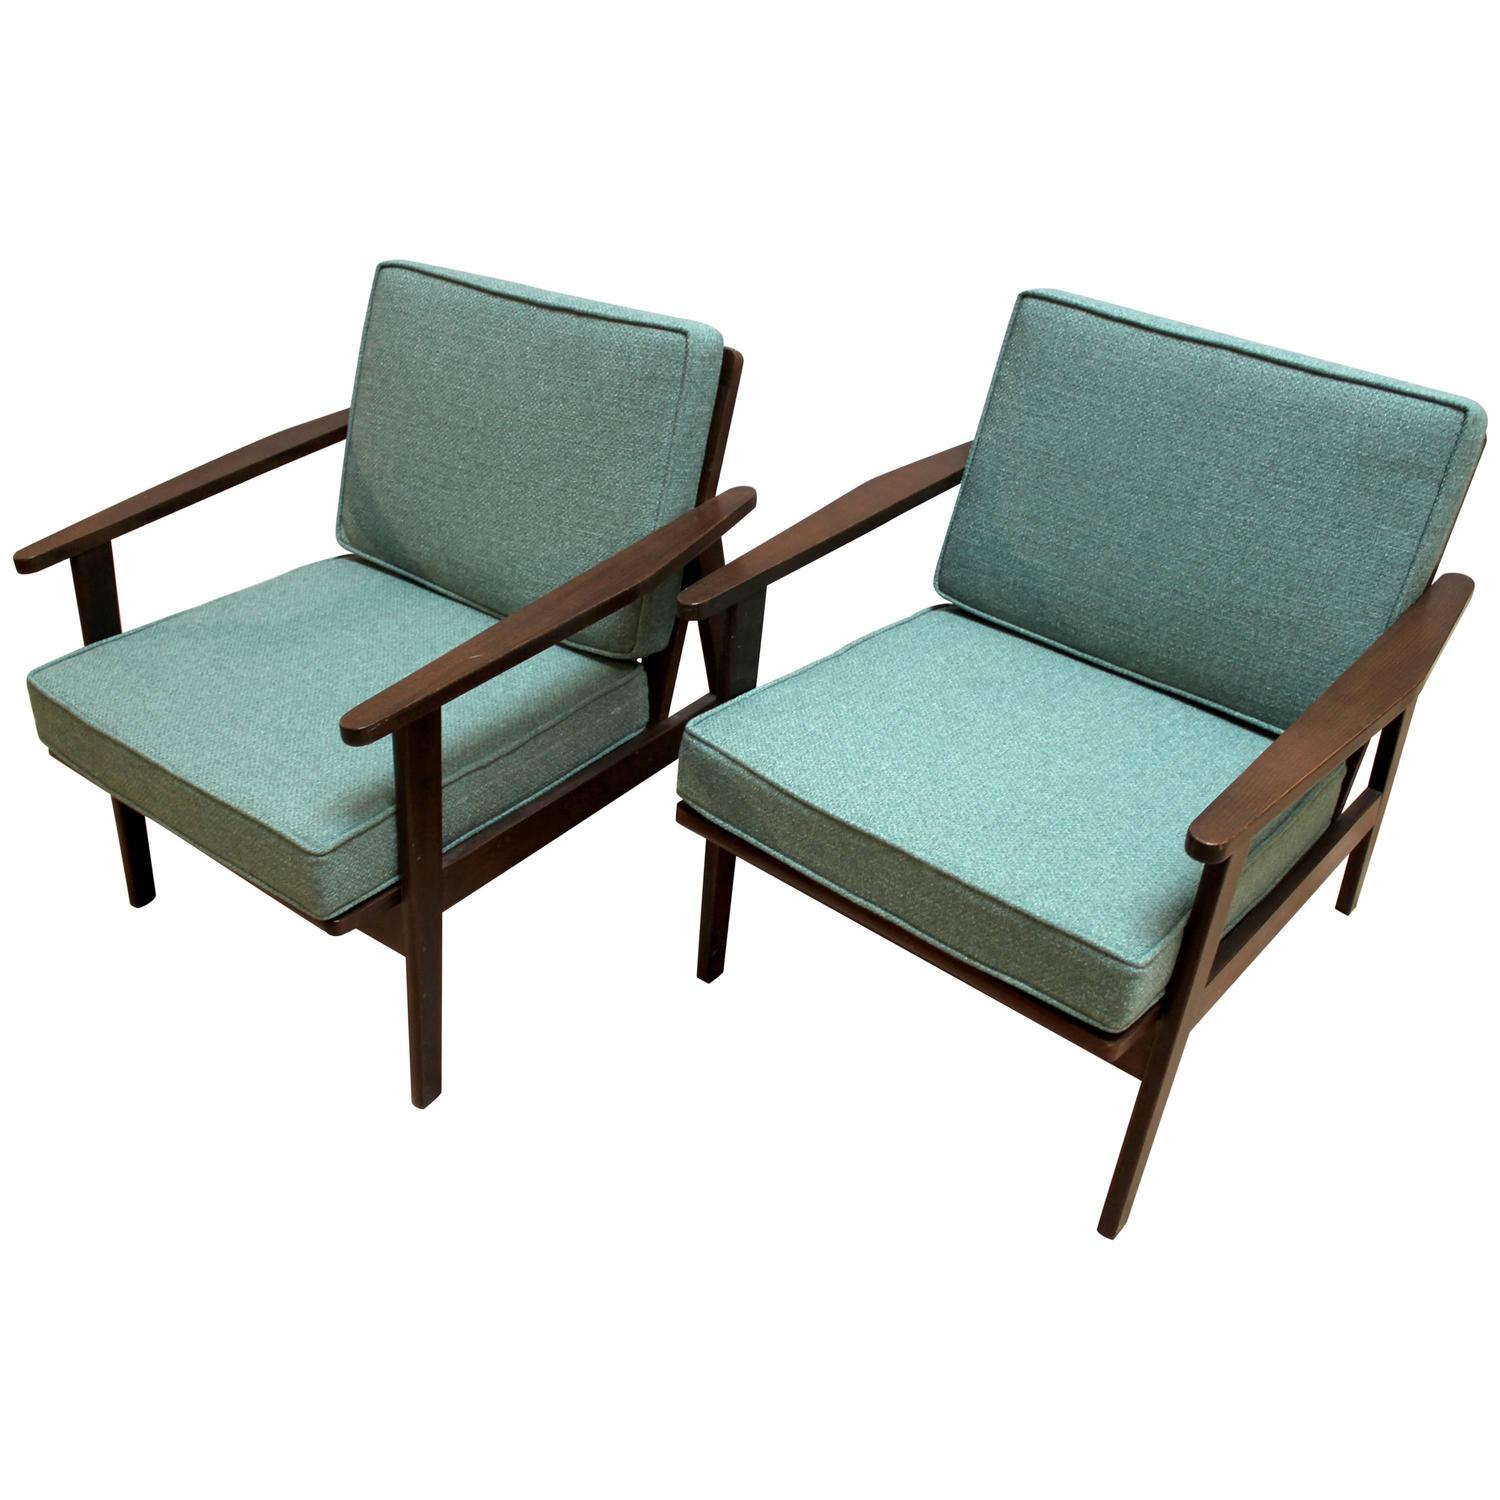 Pair of 1950s japanese mid century modern upholstered for Mid century modern upholstered chair